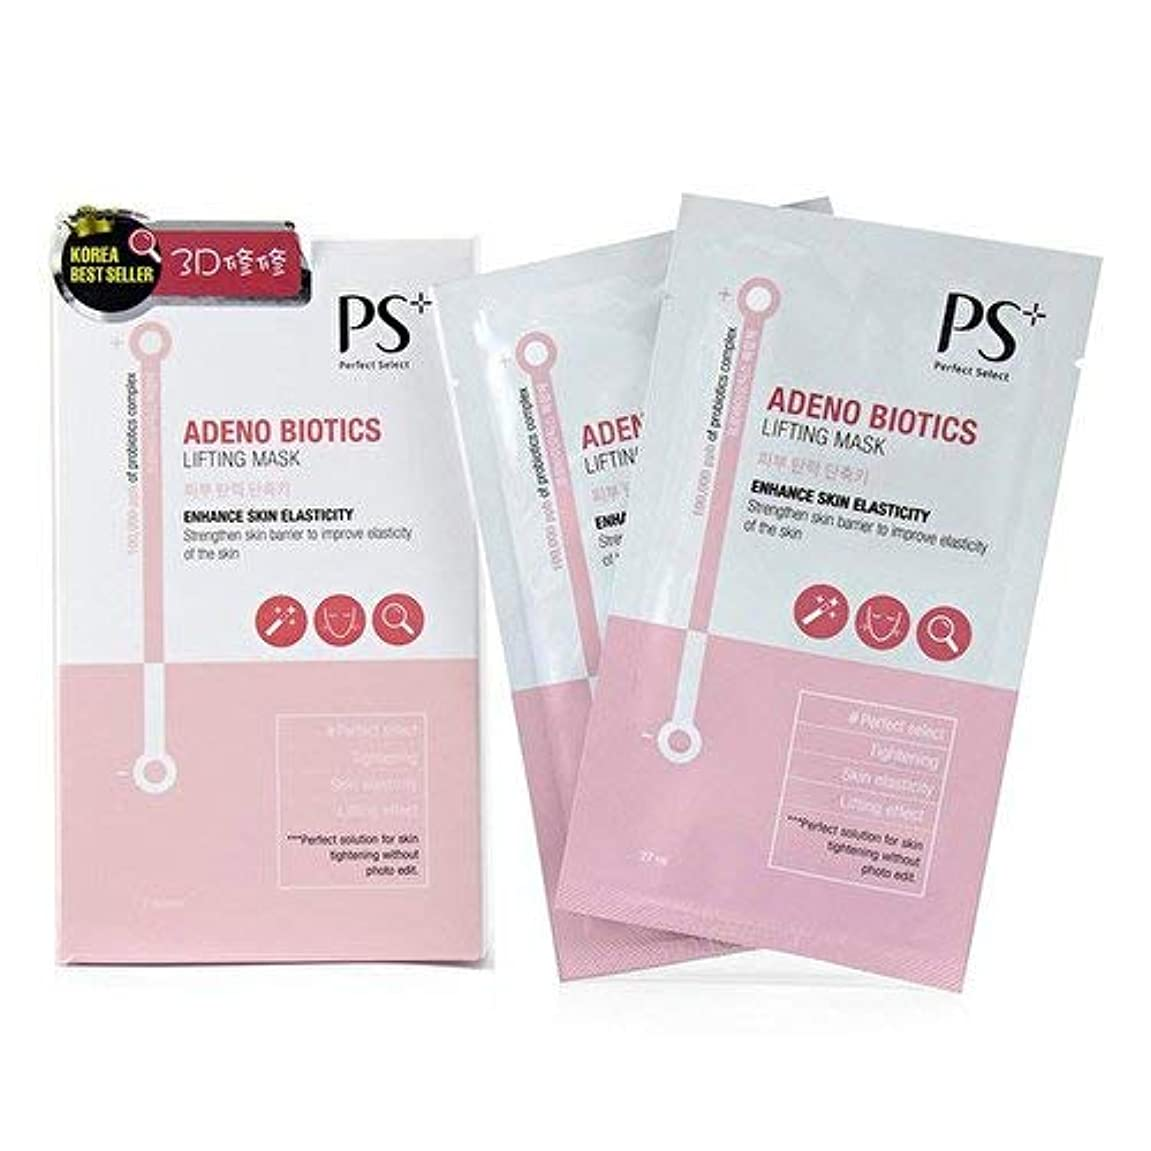 もちろん誠実マイルドPS Perfect Select Adeno Biotics Lifting Mask - Enhance Skin Elasticity 7pcs並行輸入品